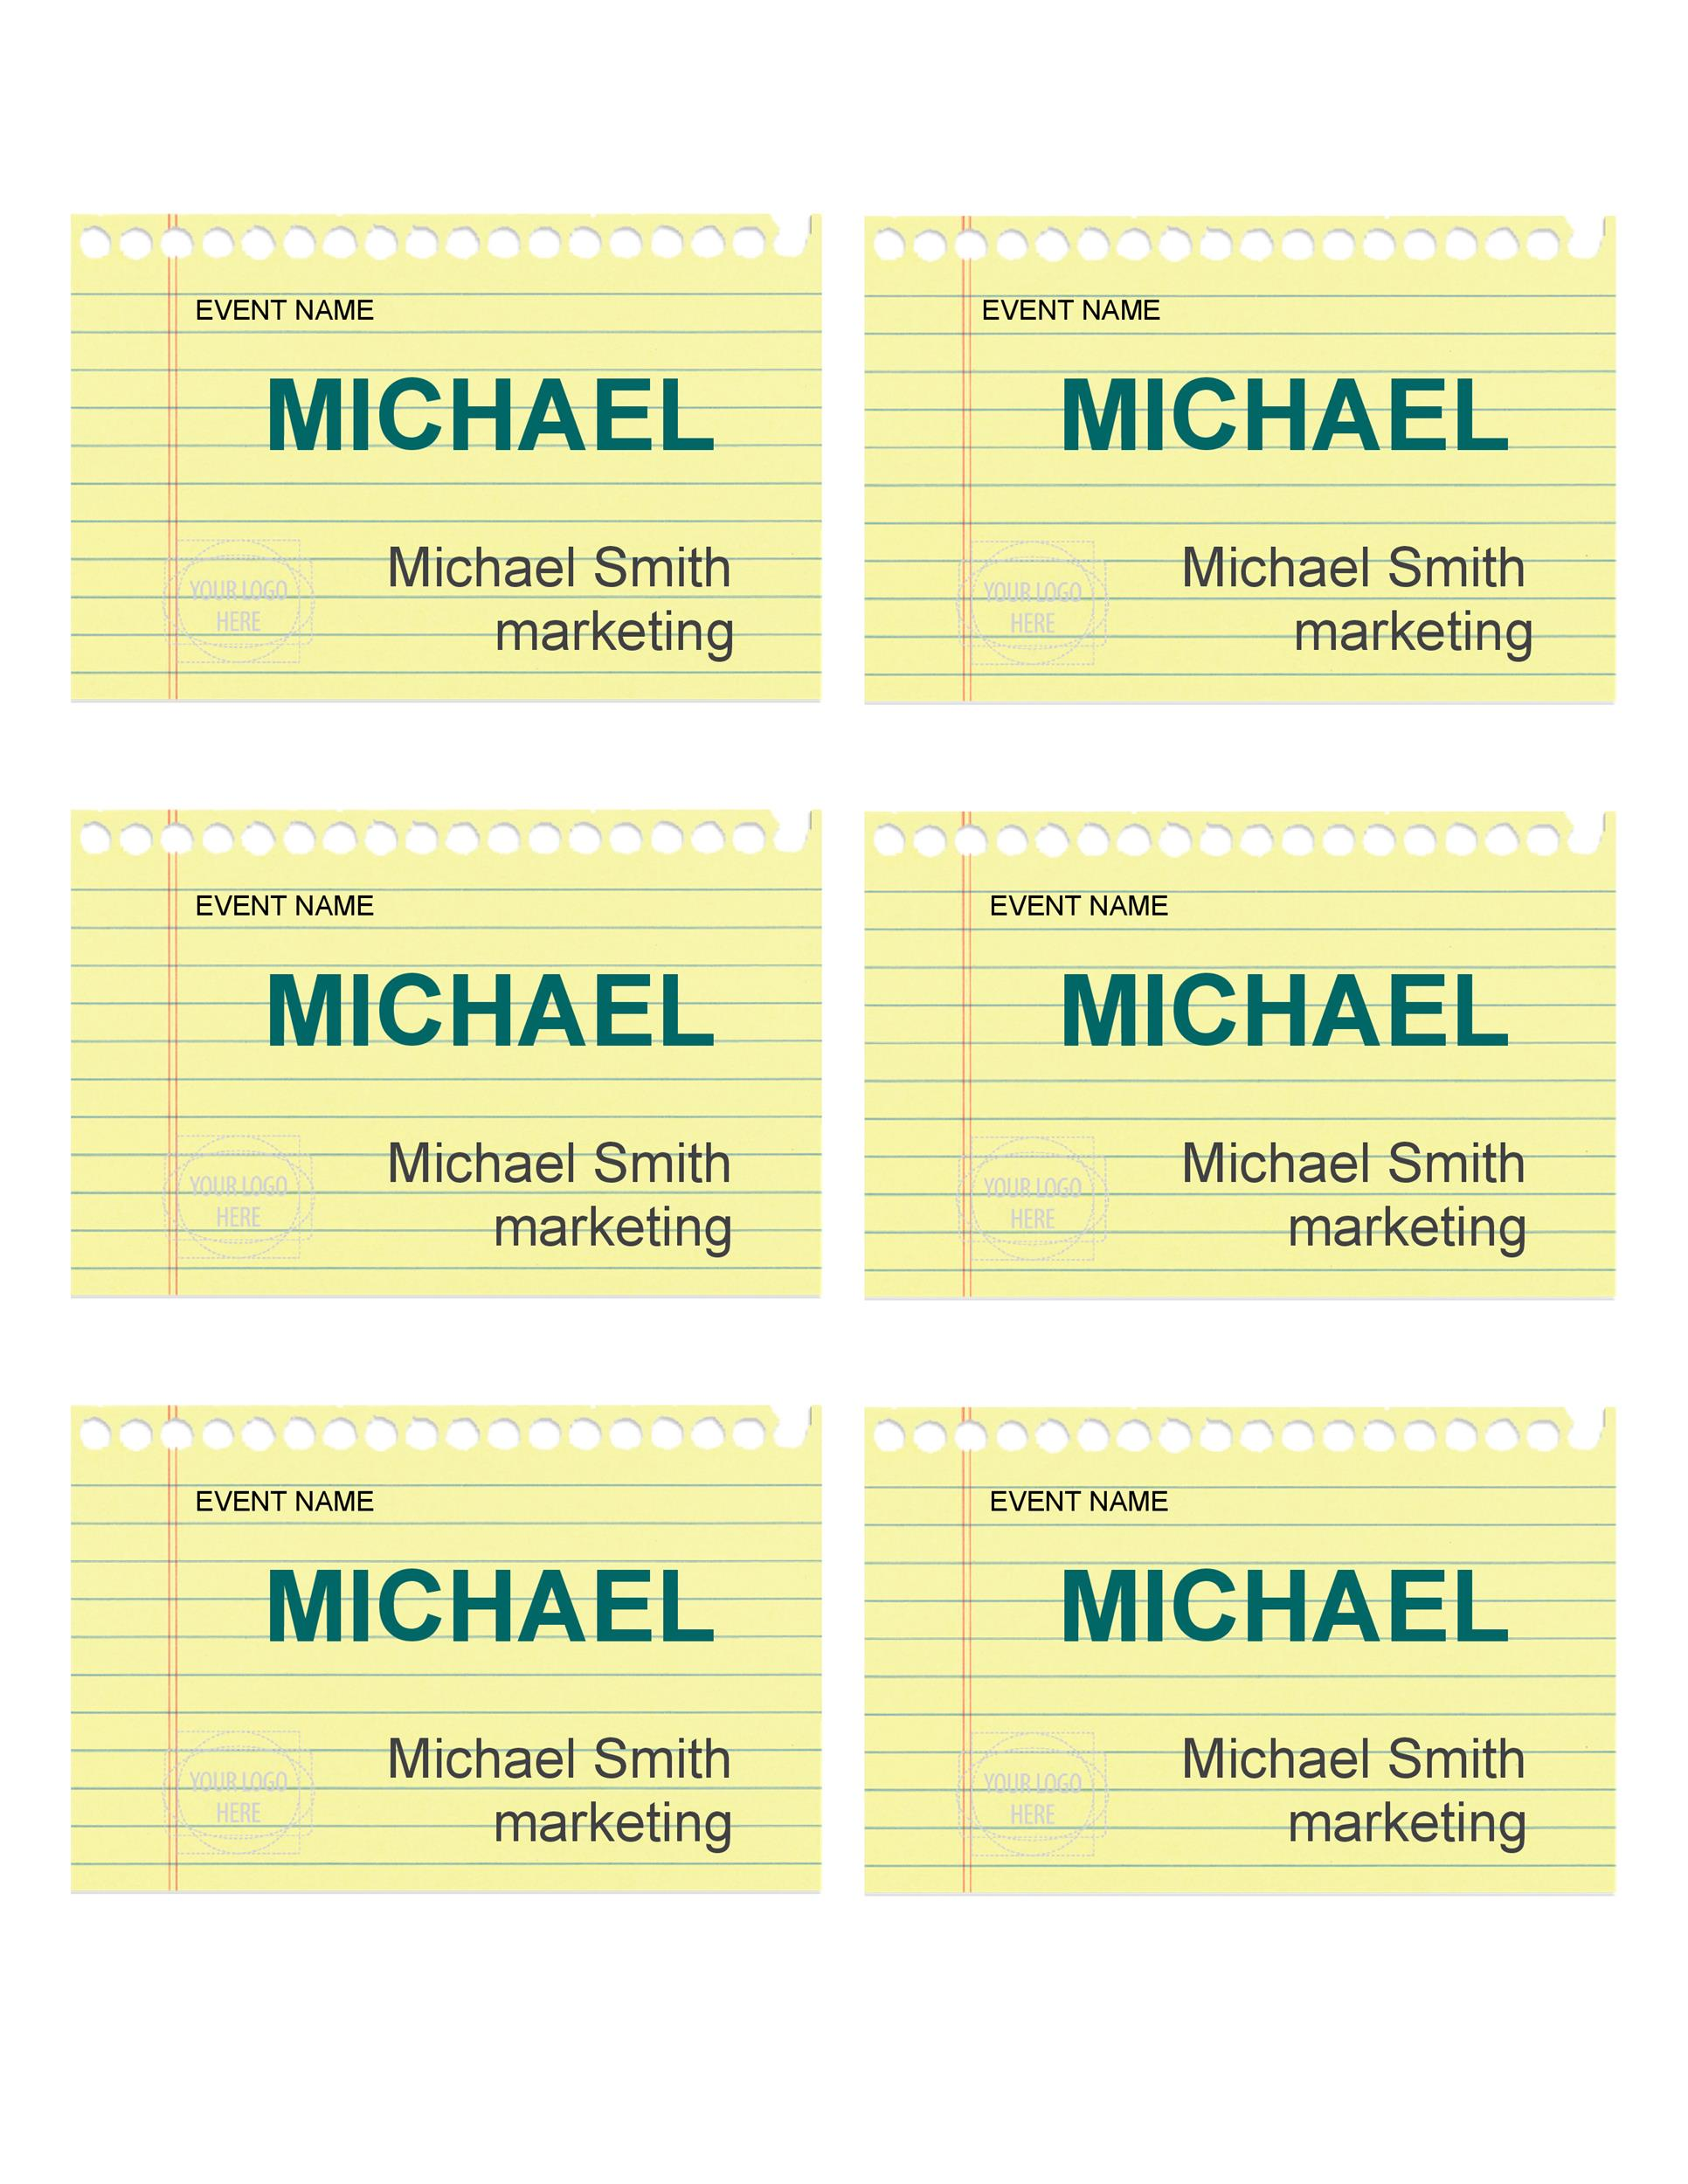 Free Name Tag Badge Templates Template Lab - Event name tag template